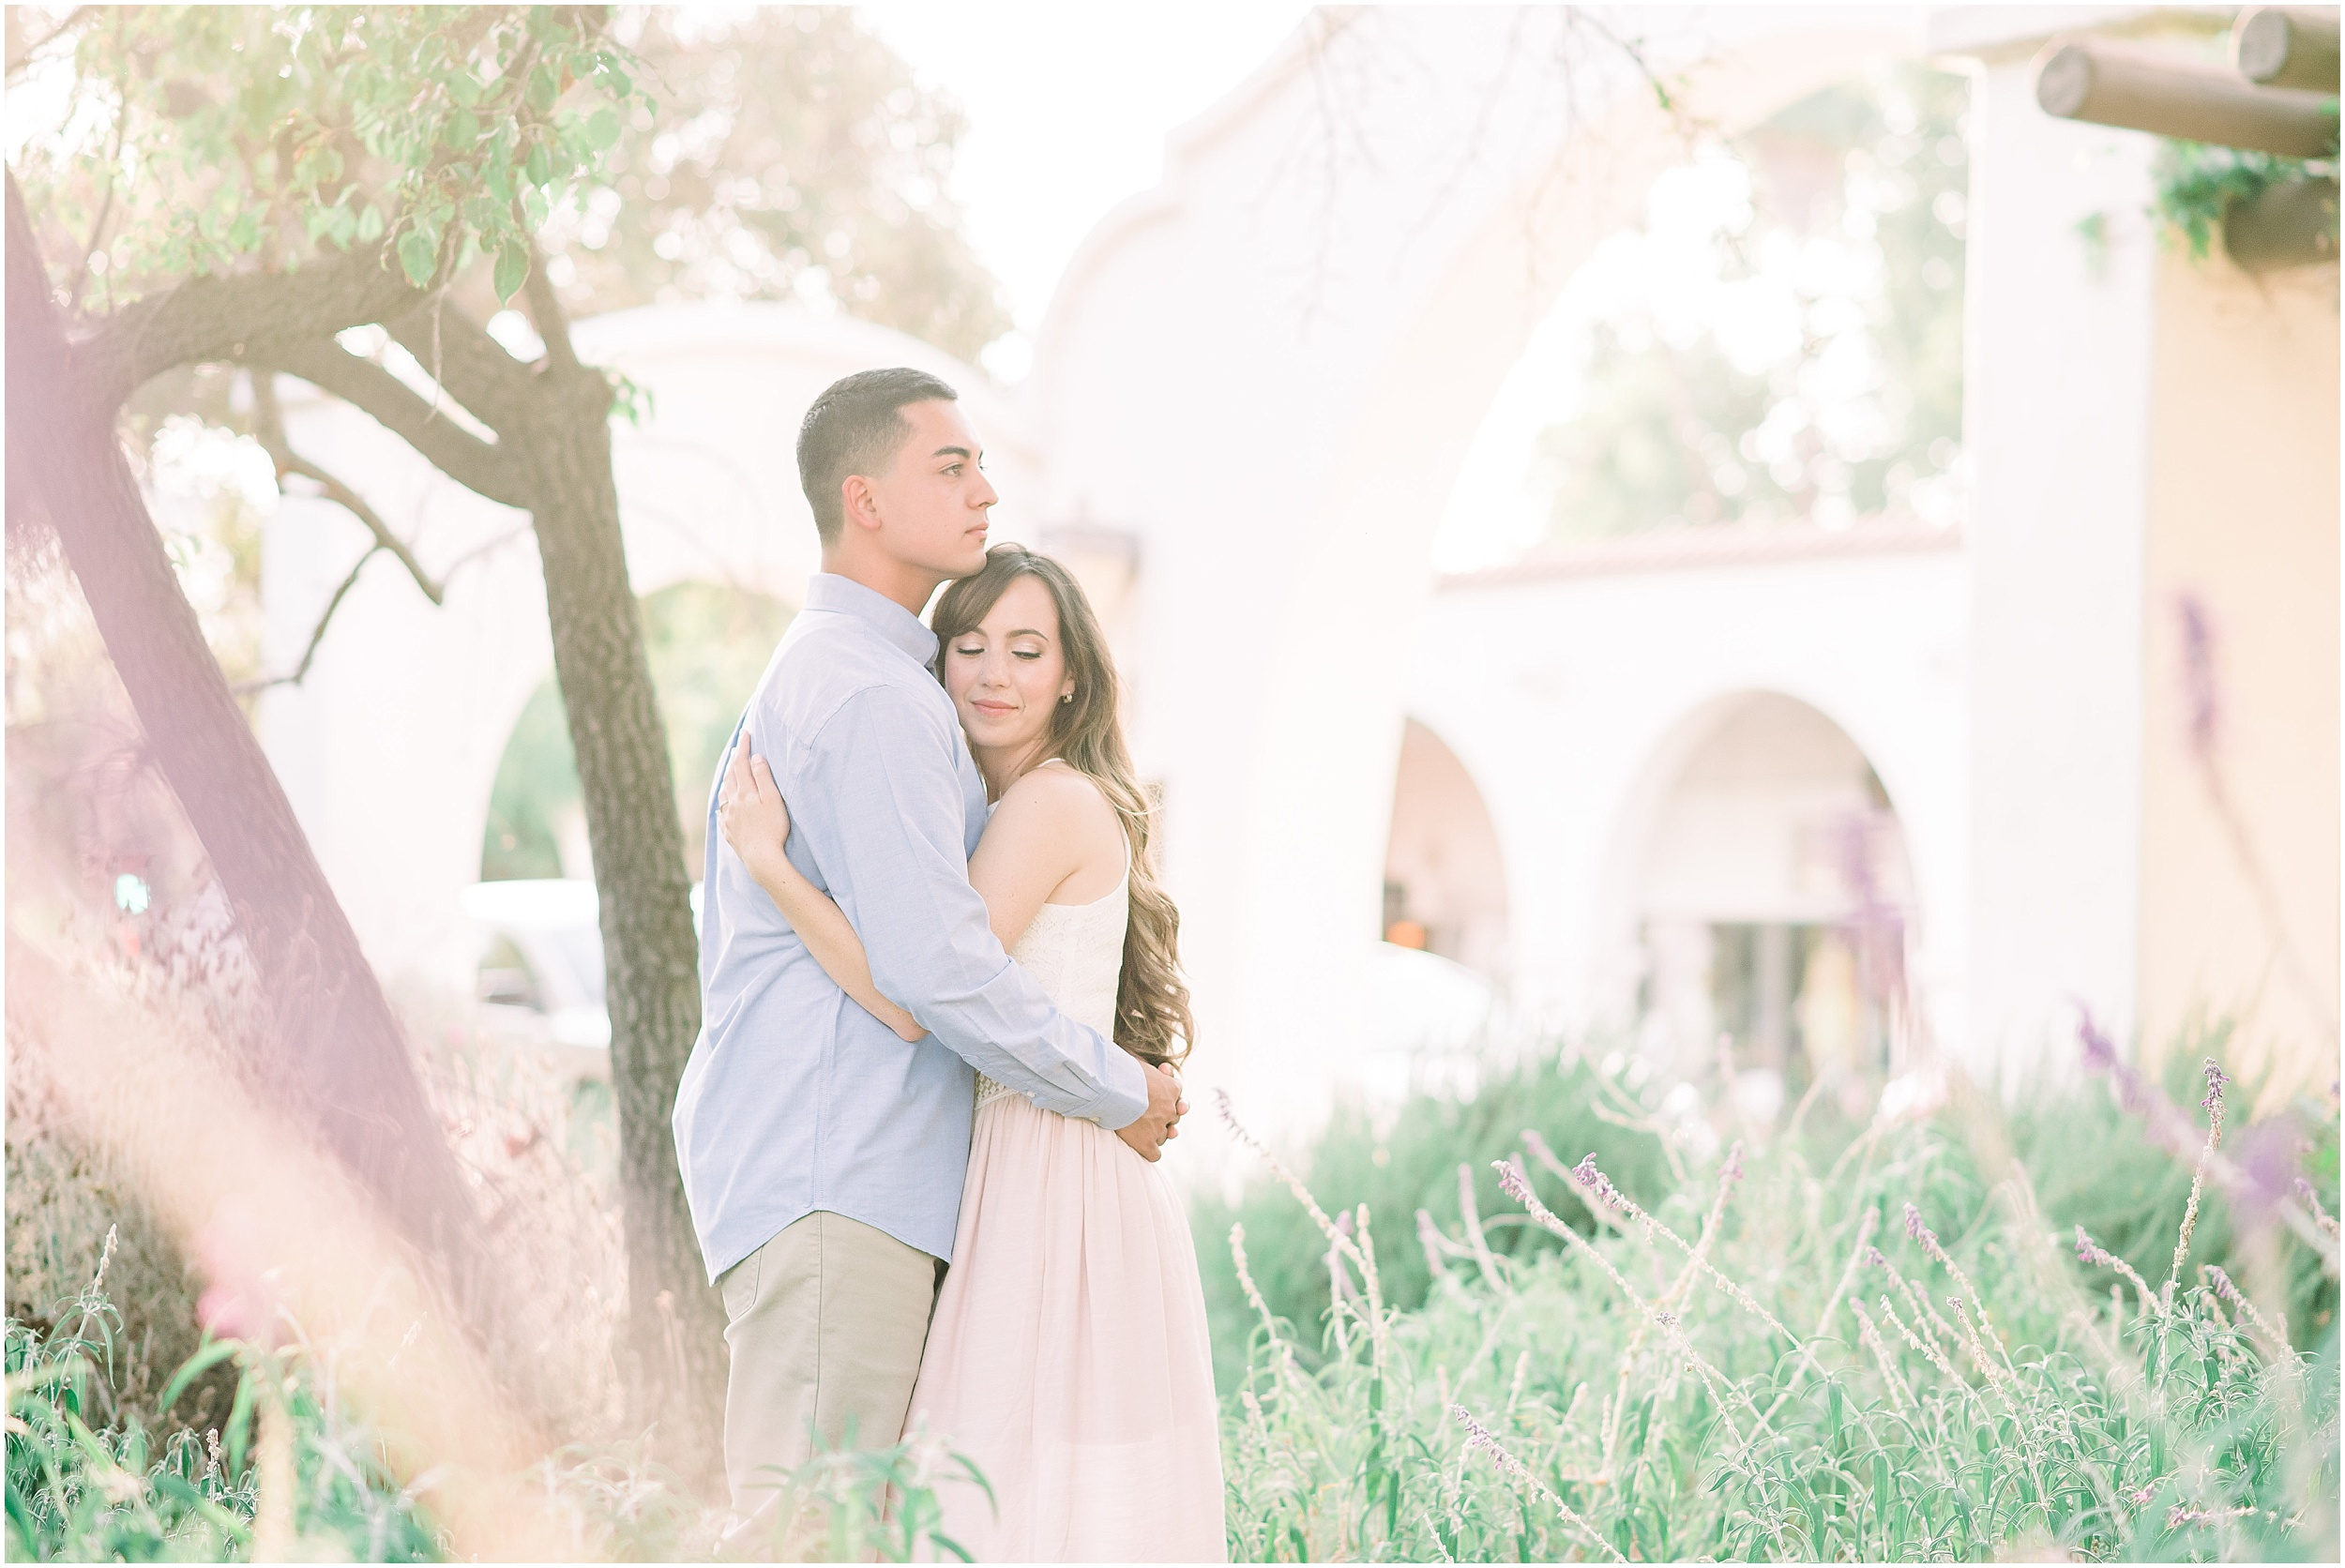 Valeria-Gonzalez-Photography-Wedding-and-Portrait-Photographer-Richmond-Virginia-Engagement-Session-in-Ojai-California_0014.jpg